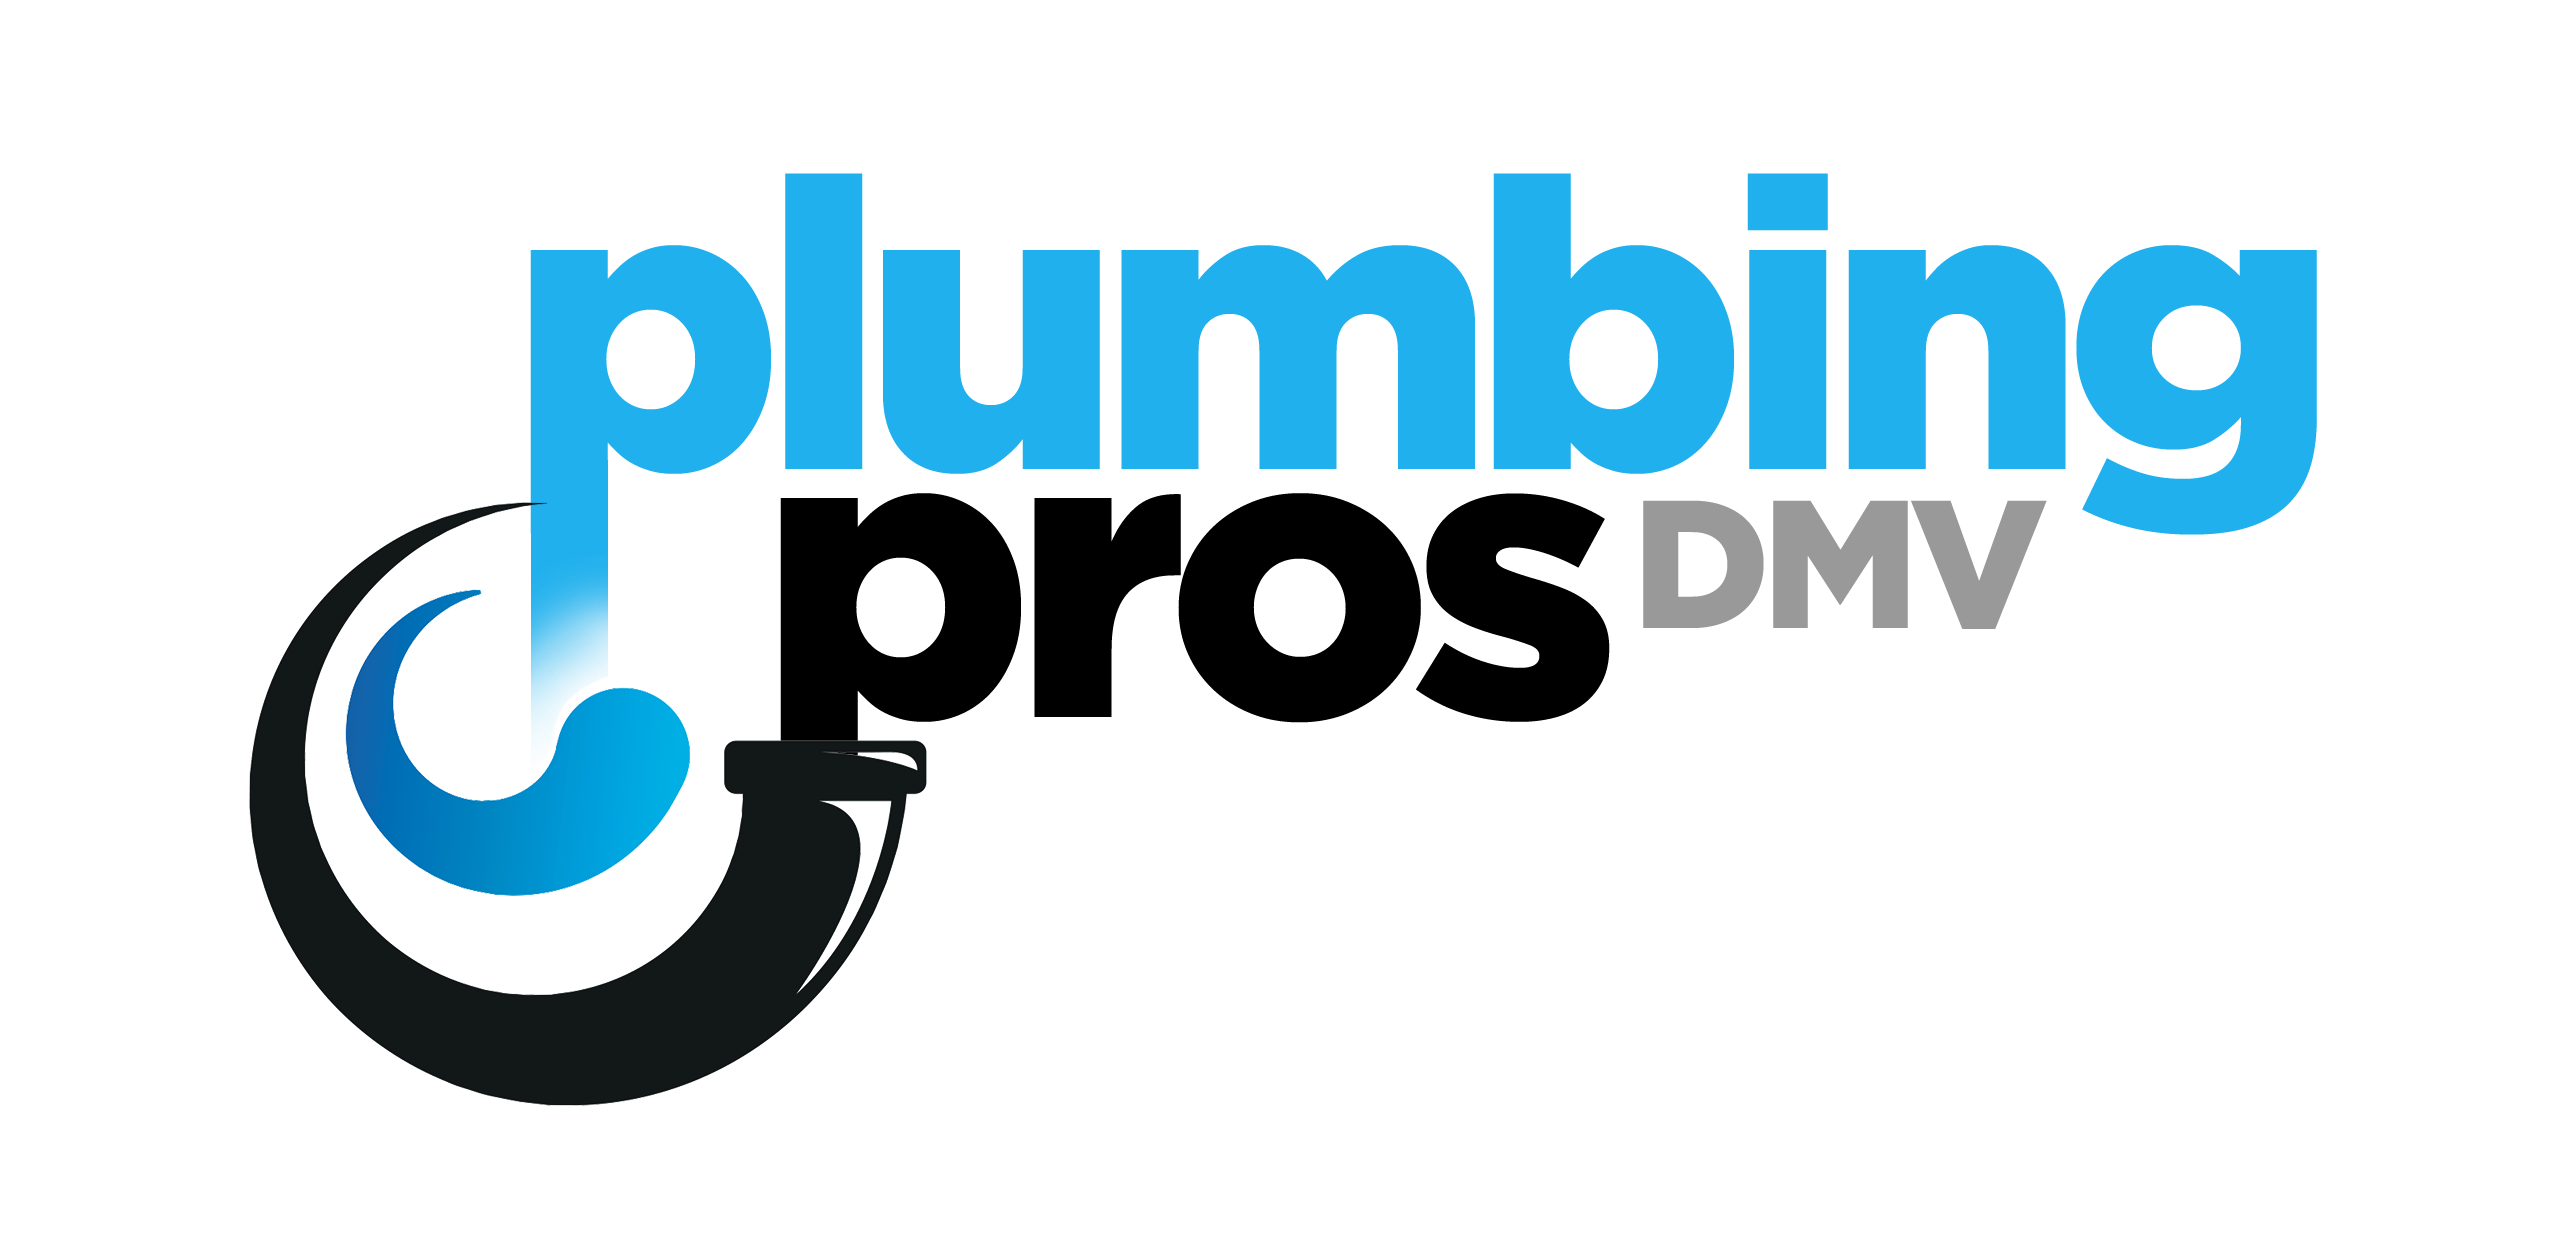 Alexandria Plumbing Pro Services Present a Wide Range of Plumbing Services to Help Solve Various Plumbing Problems in Homes and Businesses